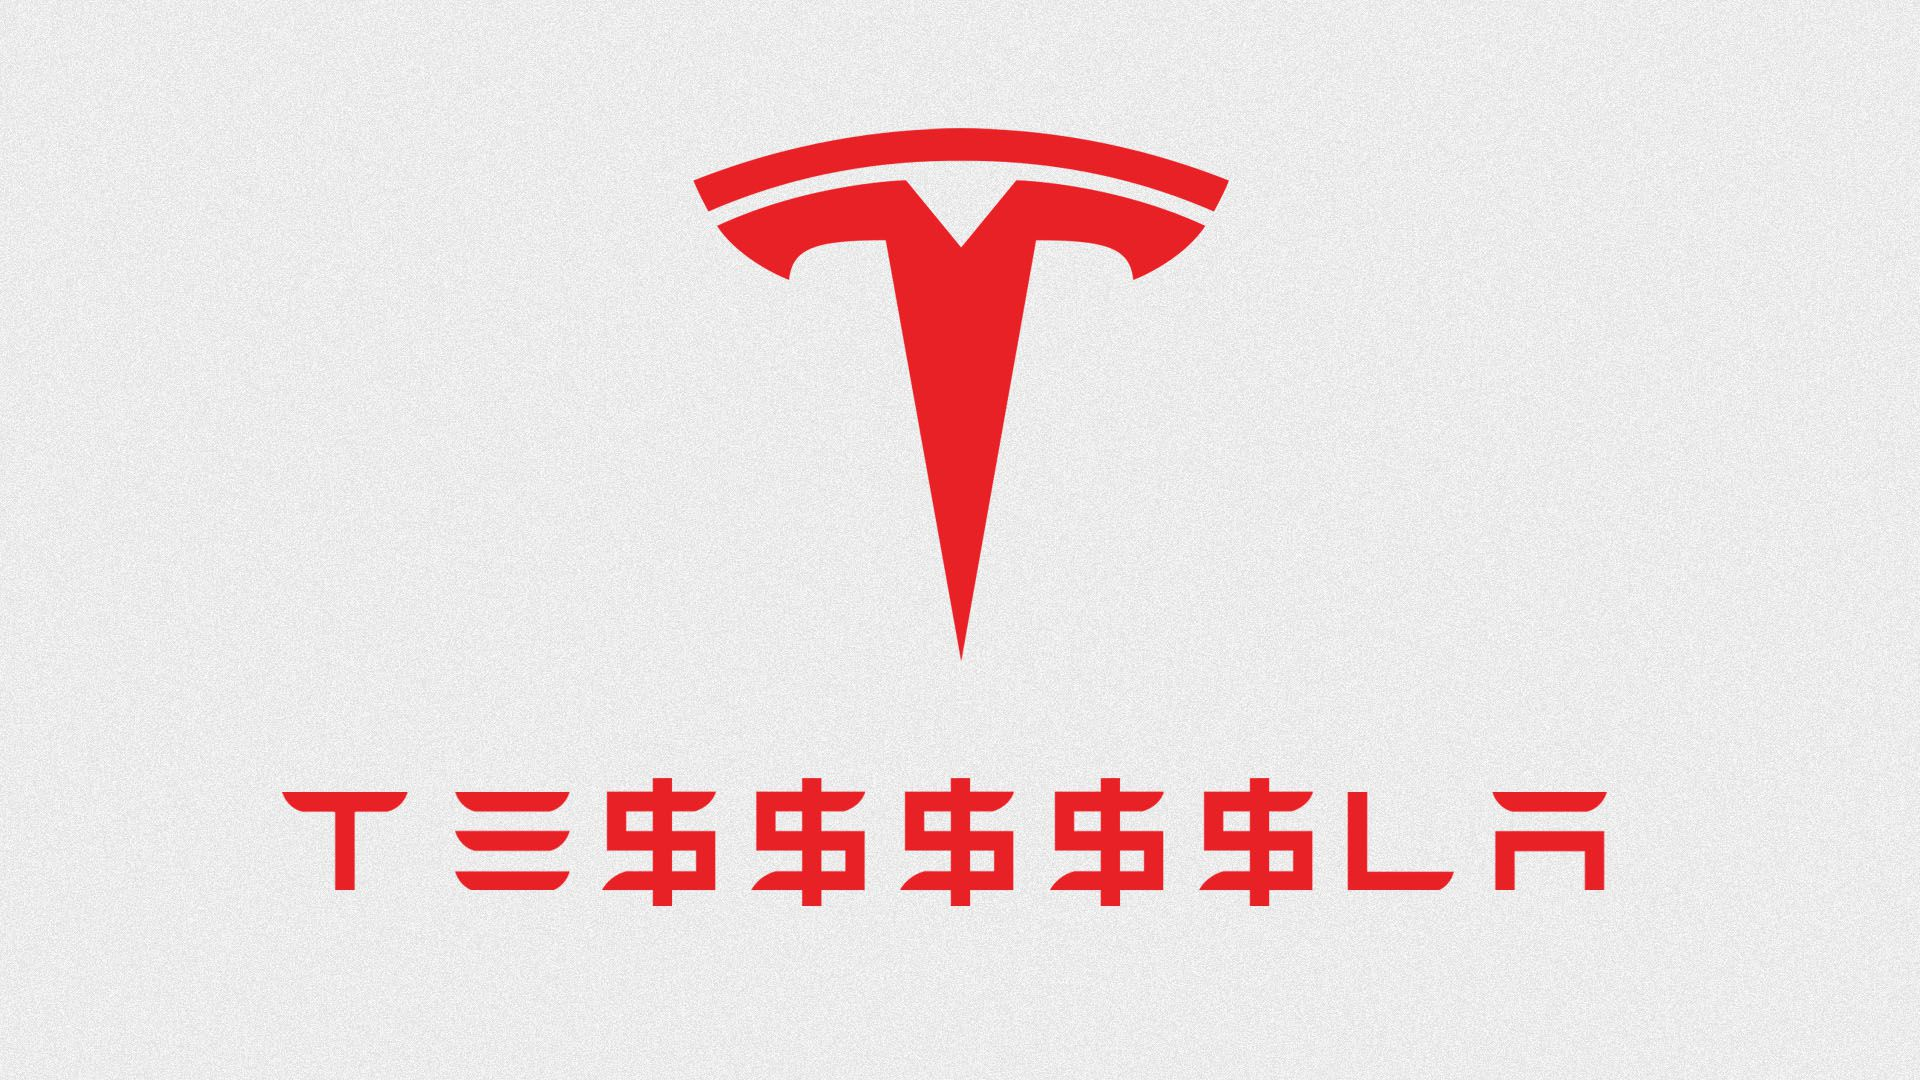 Illustration of the Tesla logo with multiple dollar signs in the middle